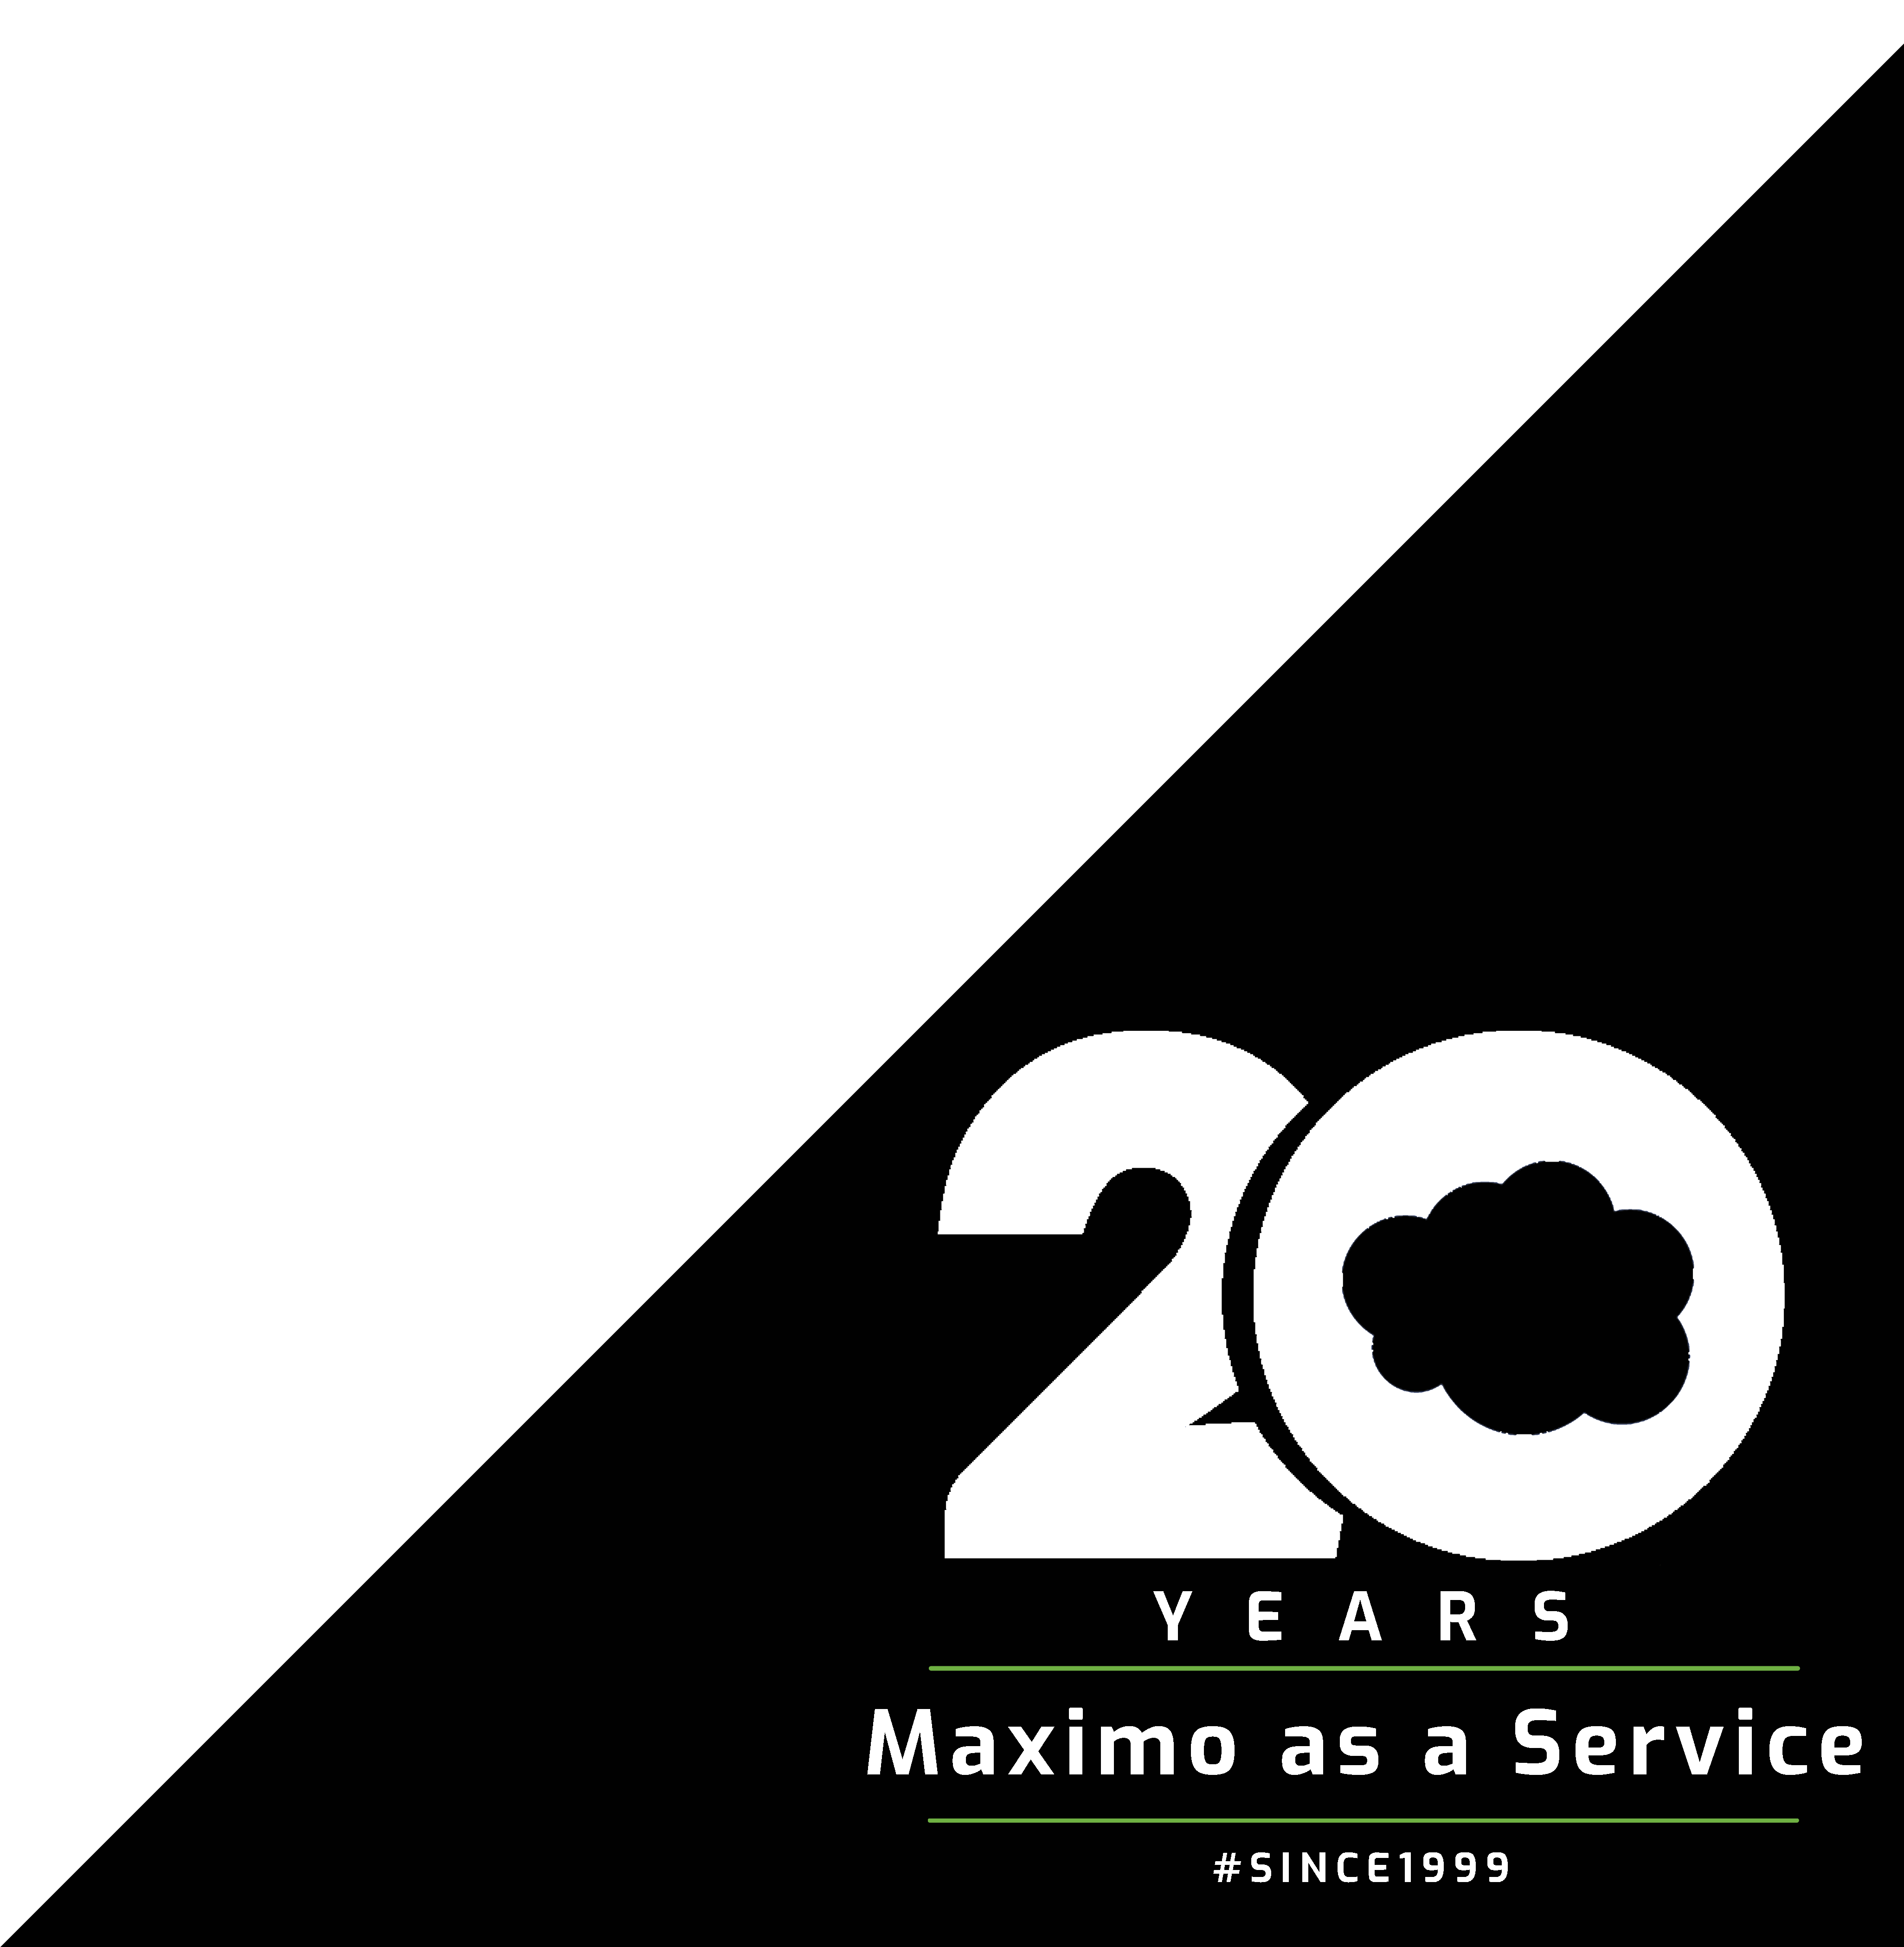 20 Years of MaaS